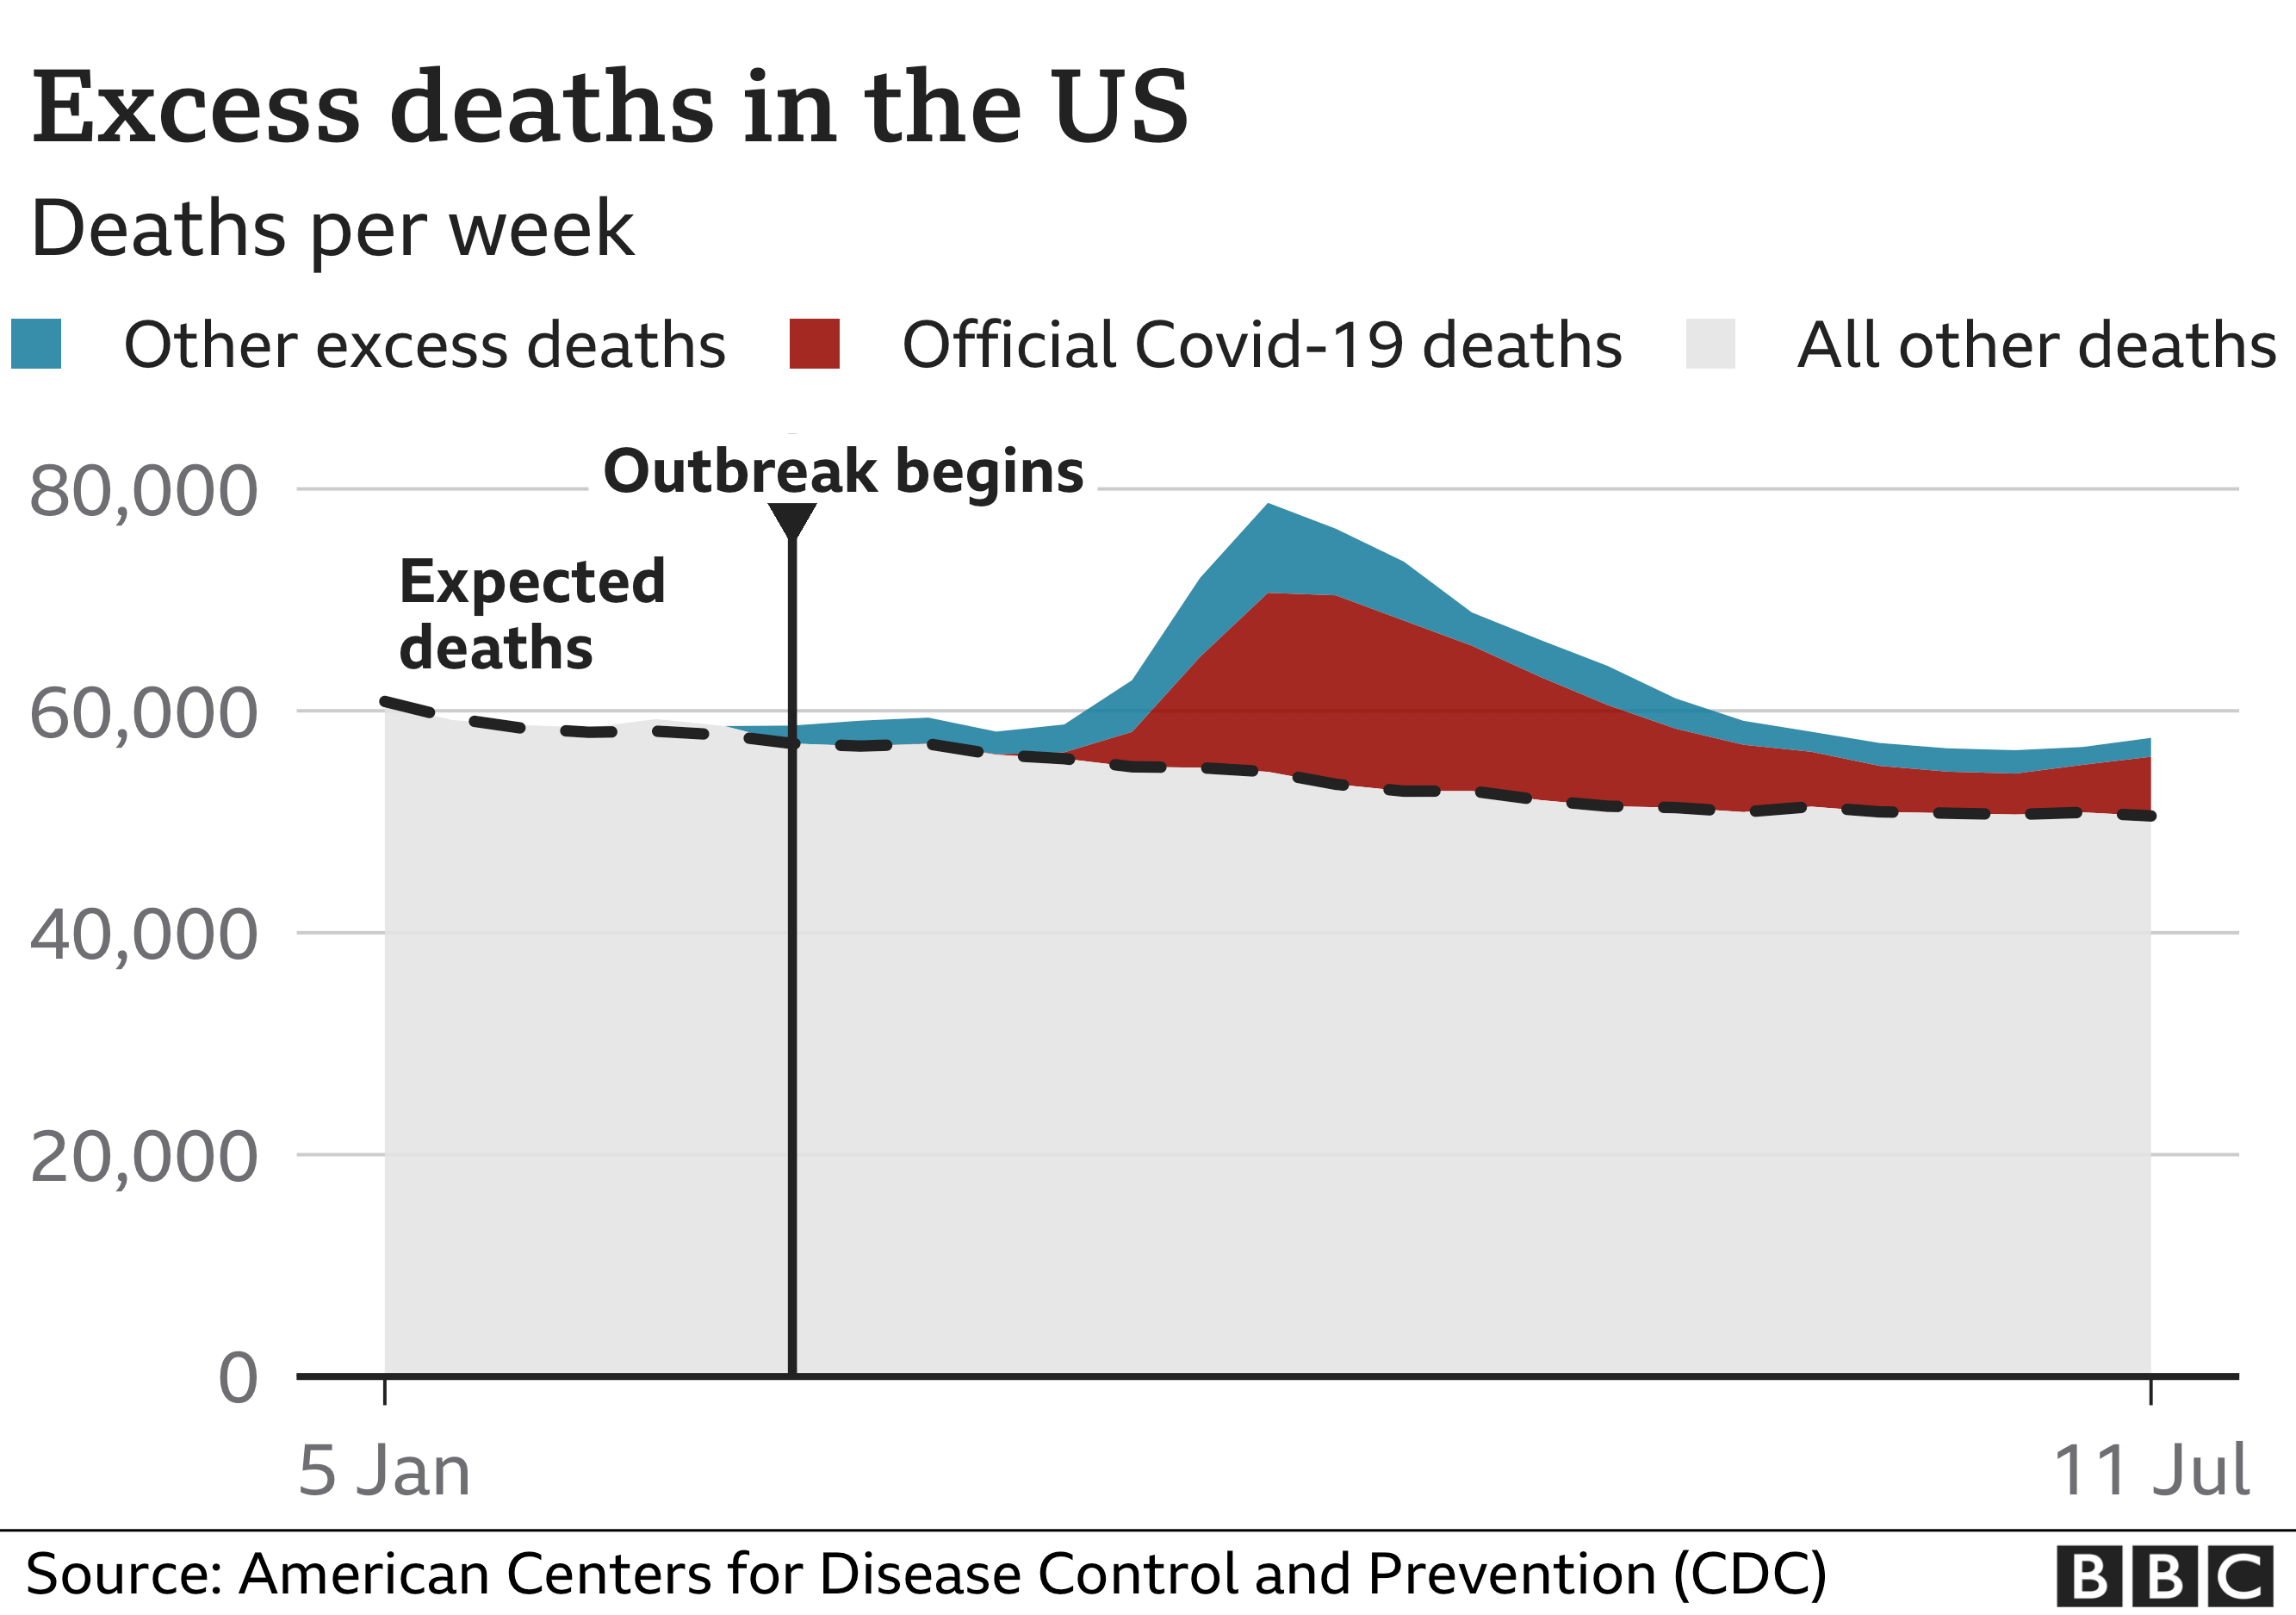 Chart showing excess deaths in the US